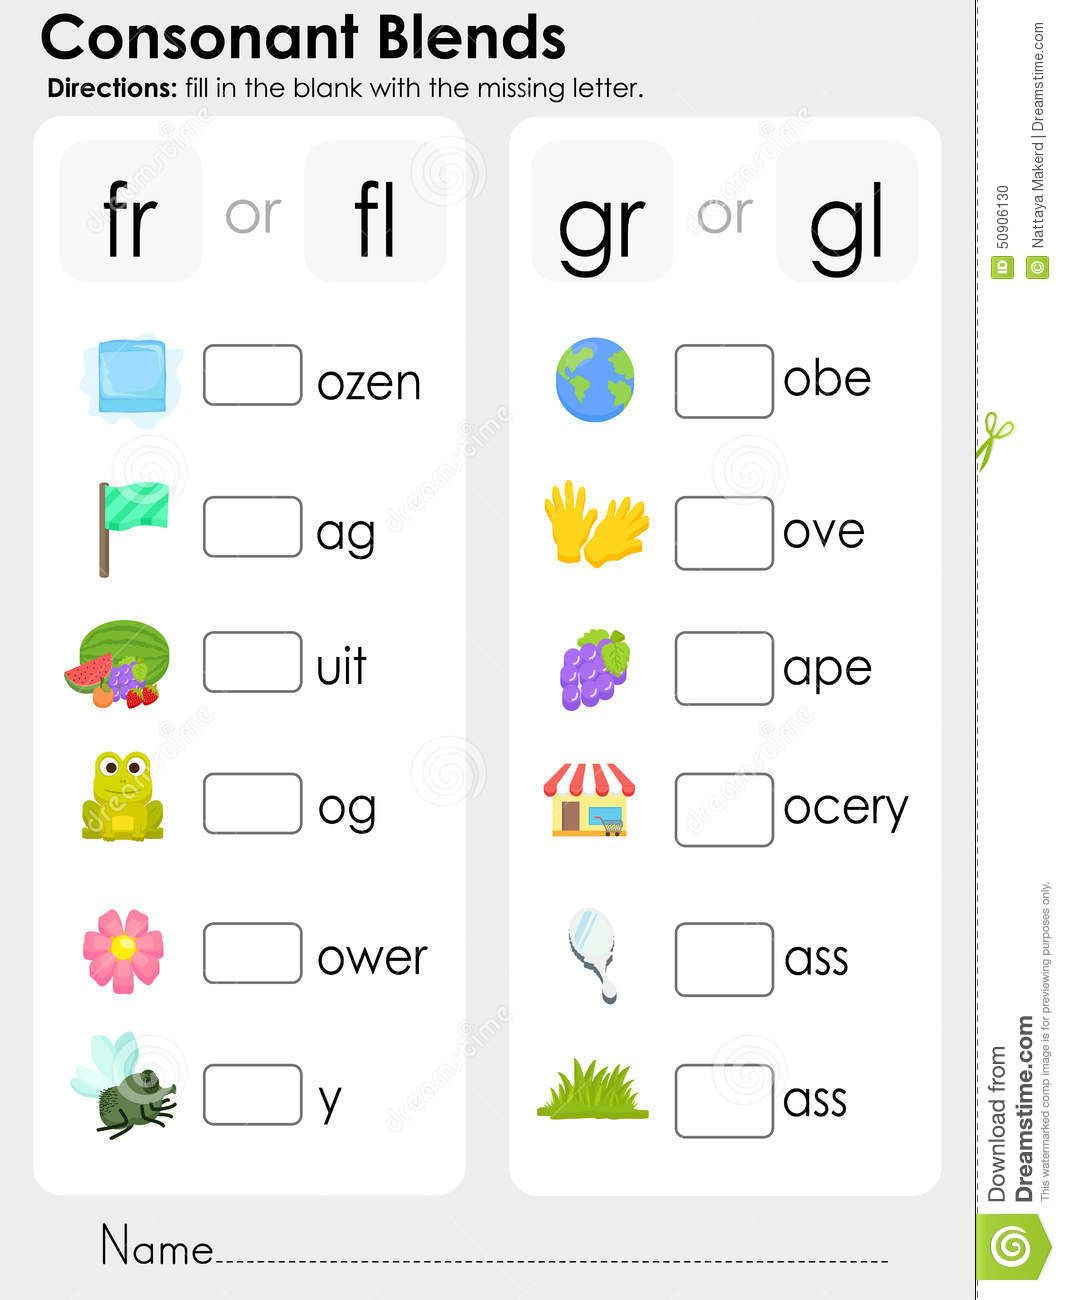 Consonant Blends Worksheets 3rd Grade Consonant Blends Missing Letter Worksheet for Education